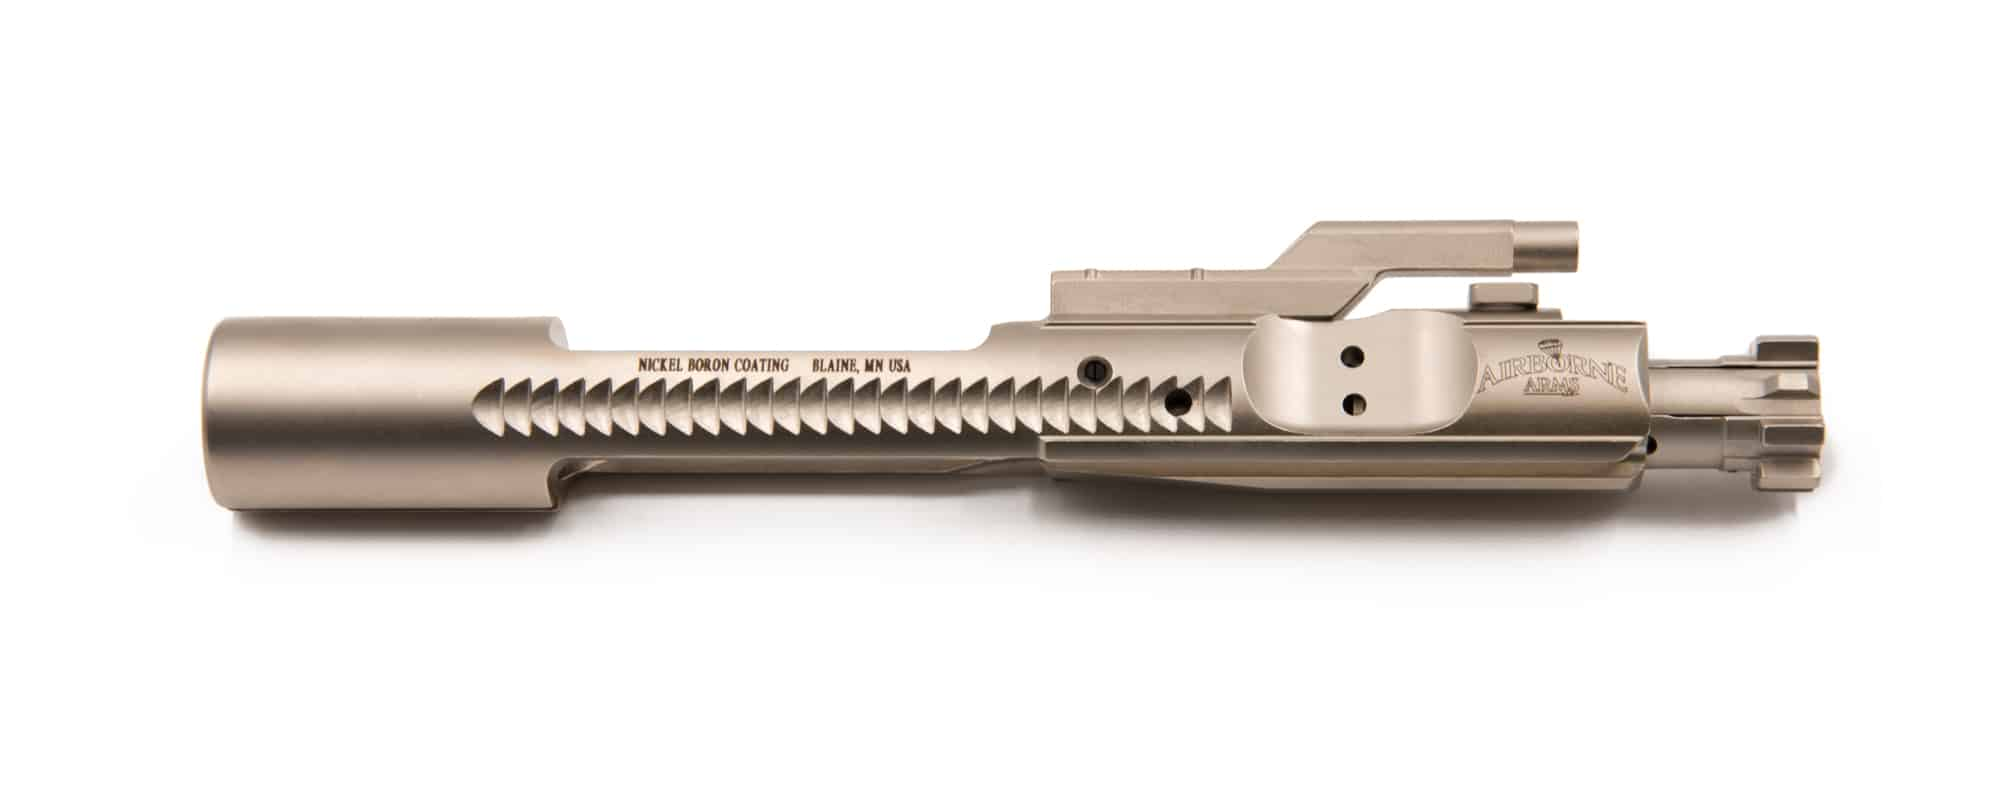 Aam4 nickel boron bolt carrier group 556223300 blk bcg partsaccessories upper parts bolt carrier groups sciox Images